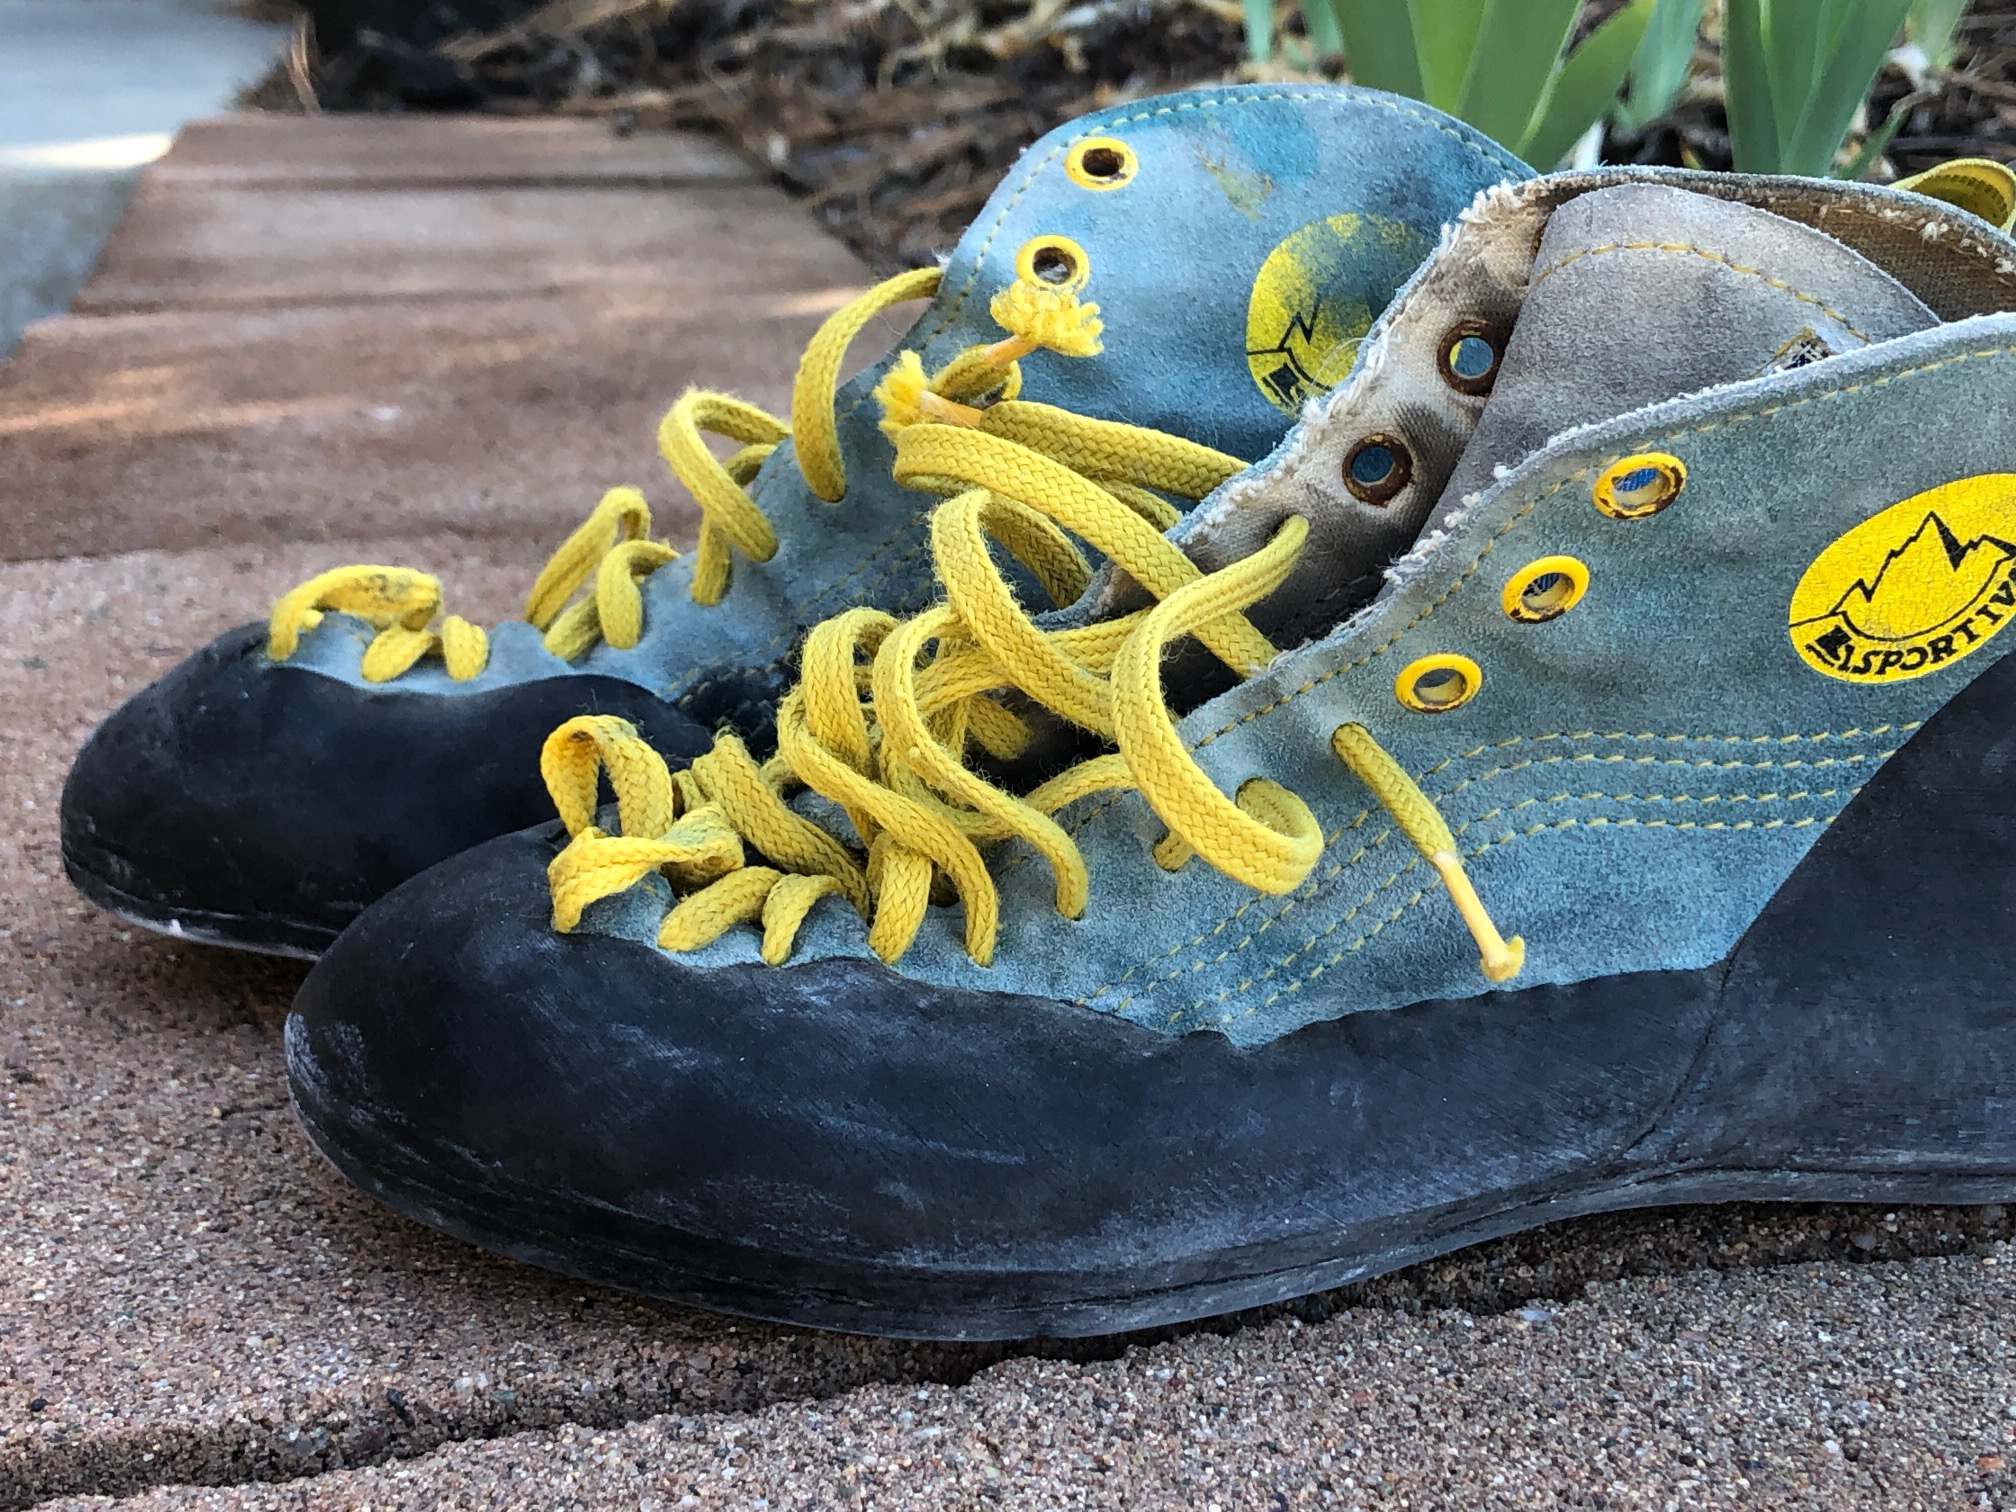 Photo of an old pair of La Sportiva climbing shoes, faded blue with yellow laces.